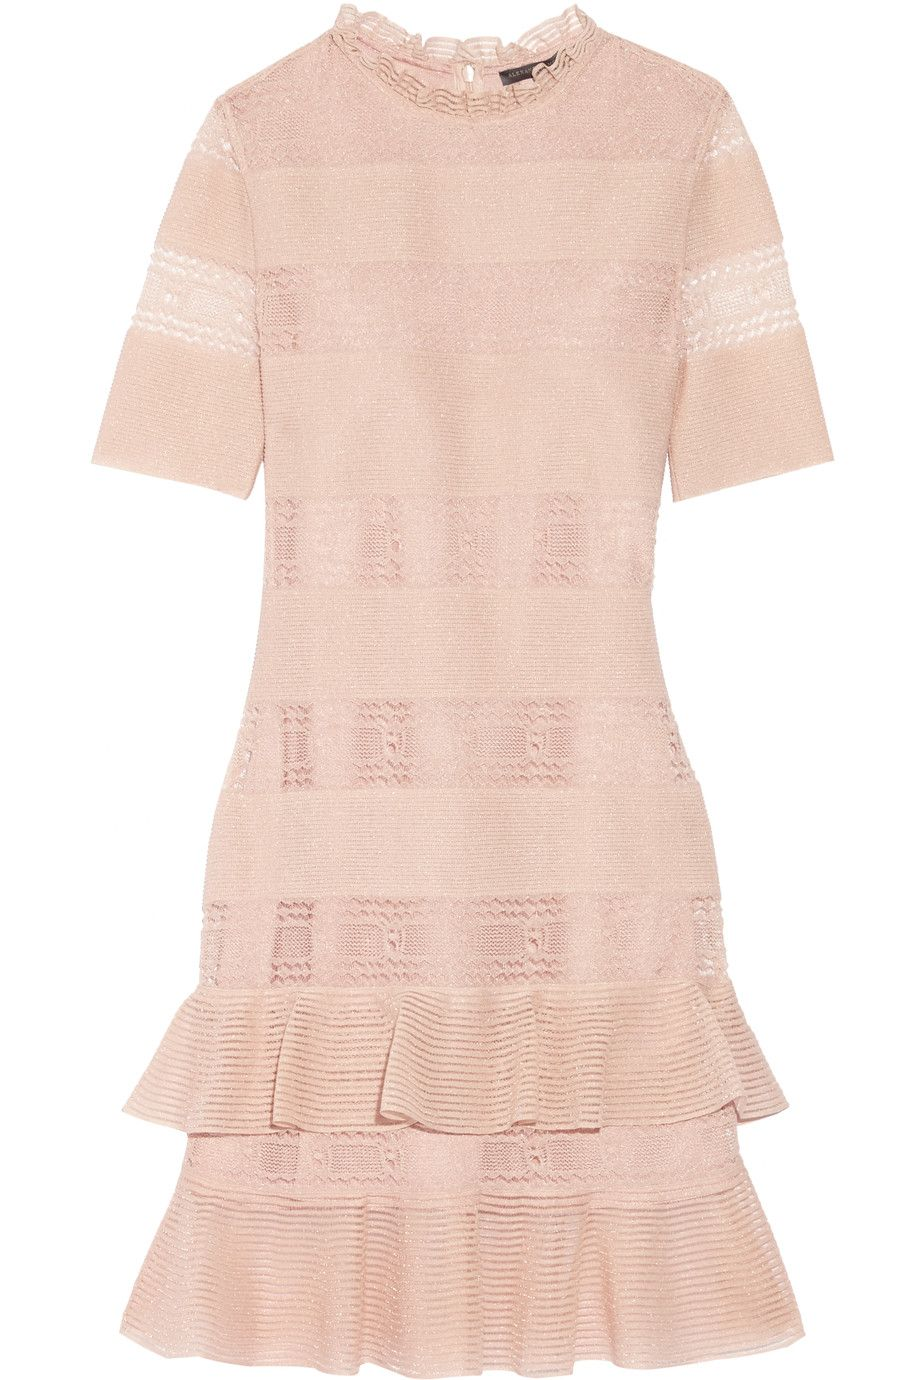 Alexander mcqueen alexandermcqueen cloth dress alexander